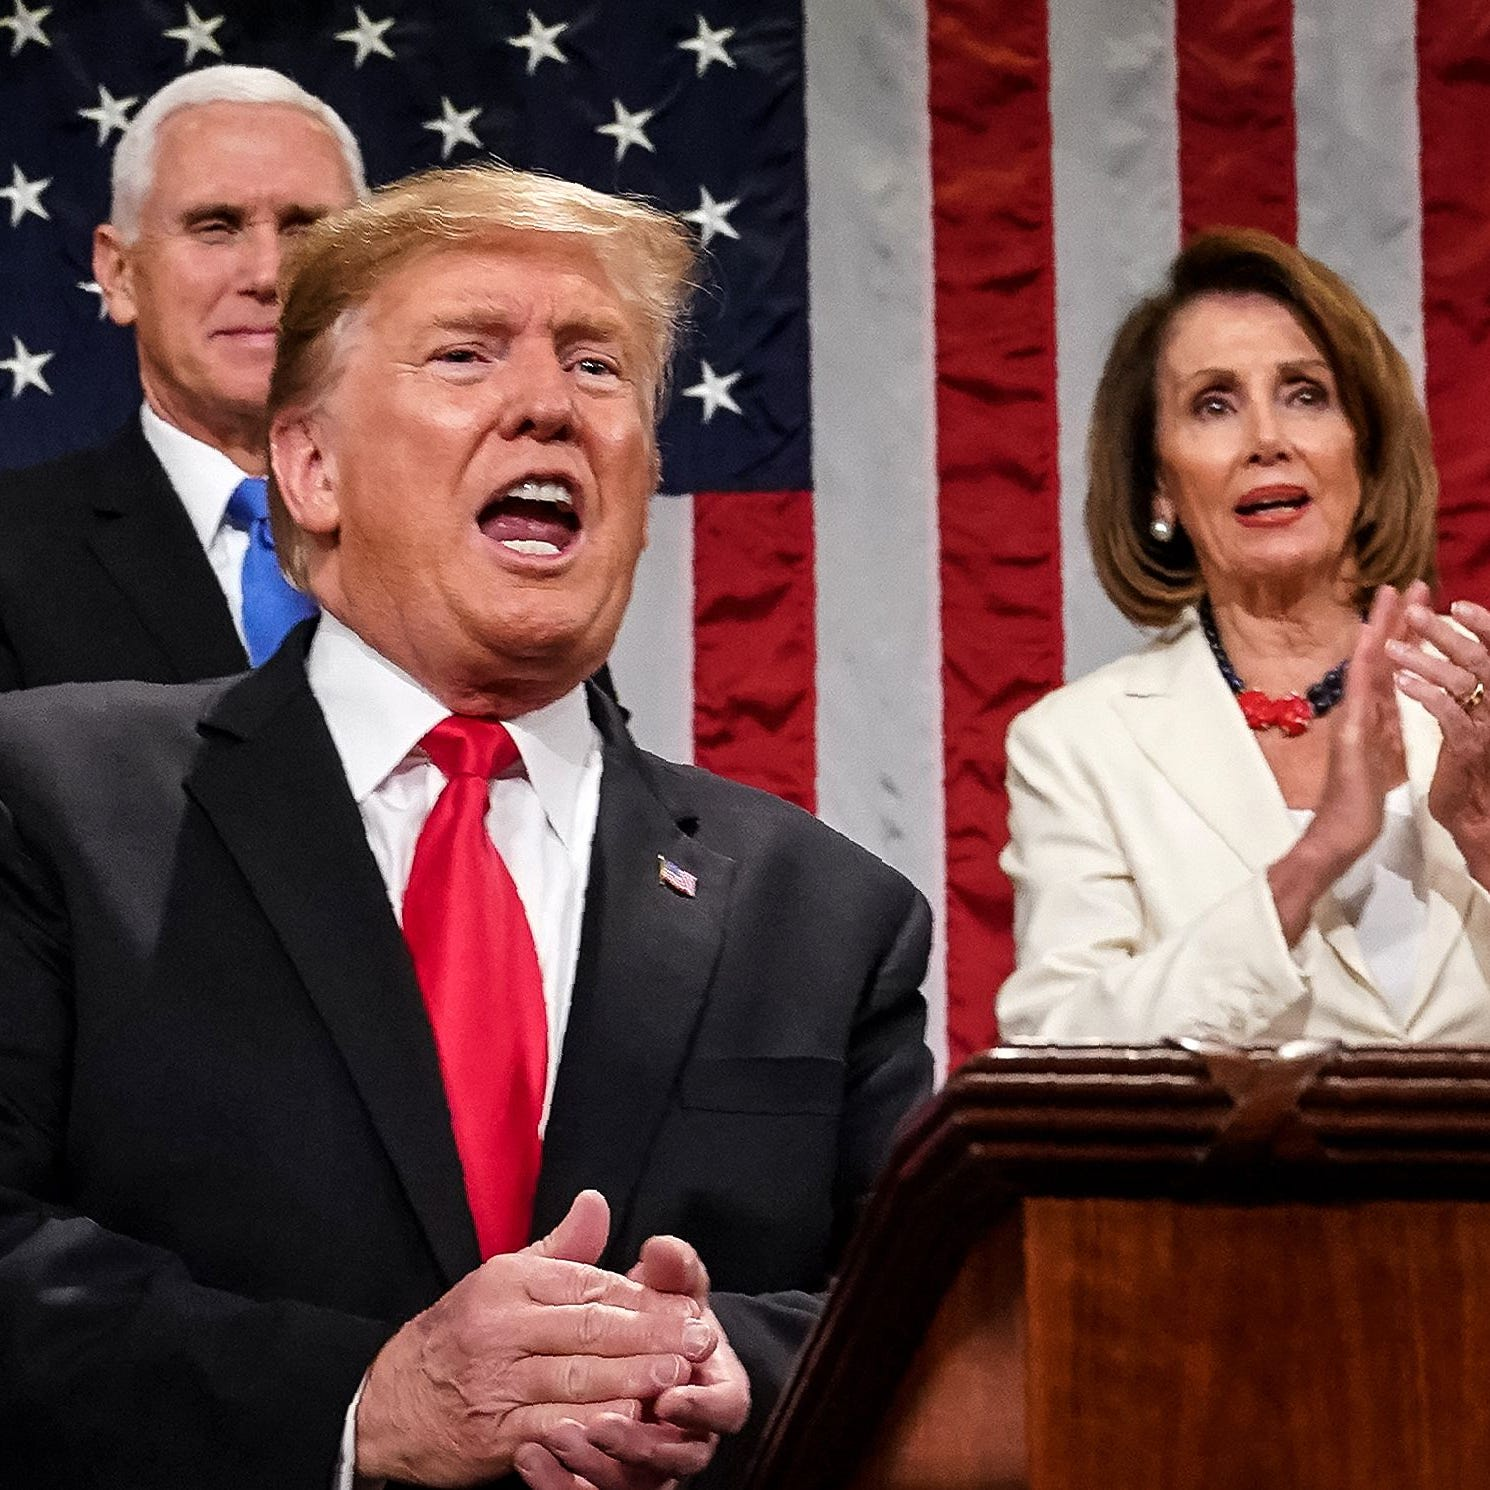 President Donald Trump delivers the State of the Union address at the US Capitol.